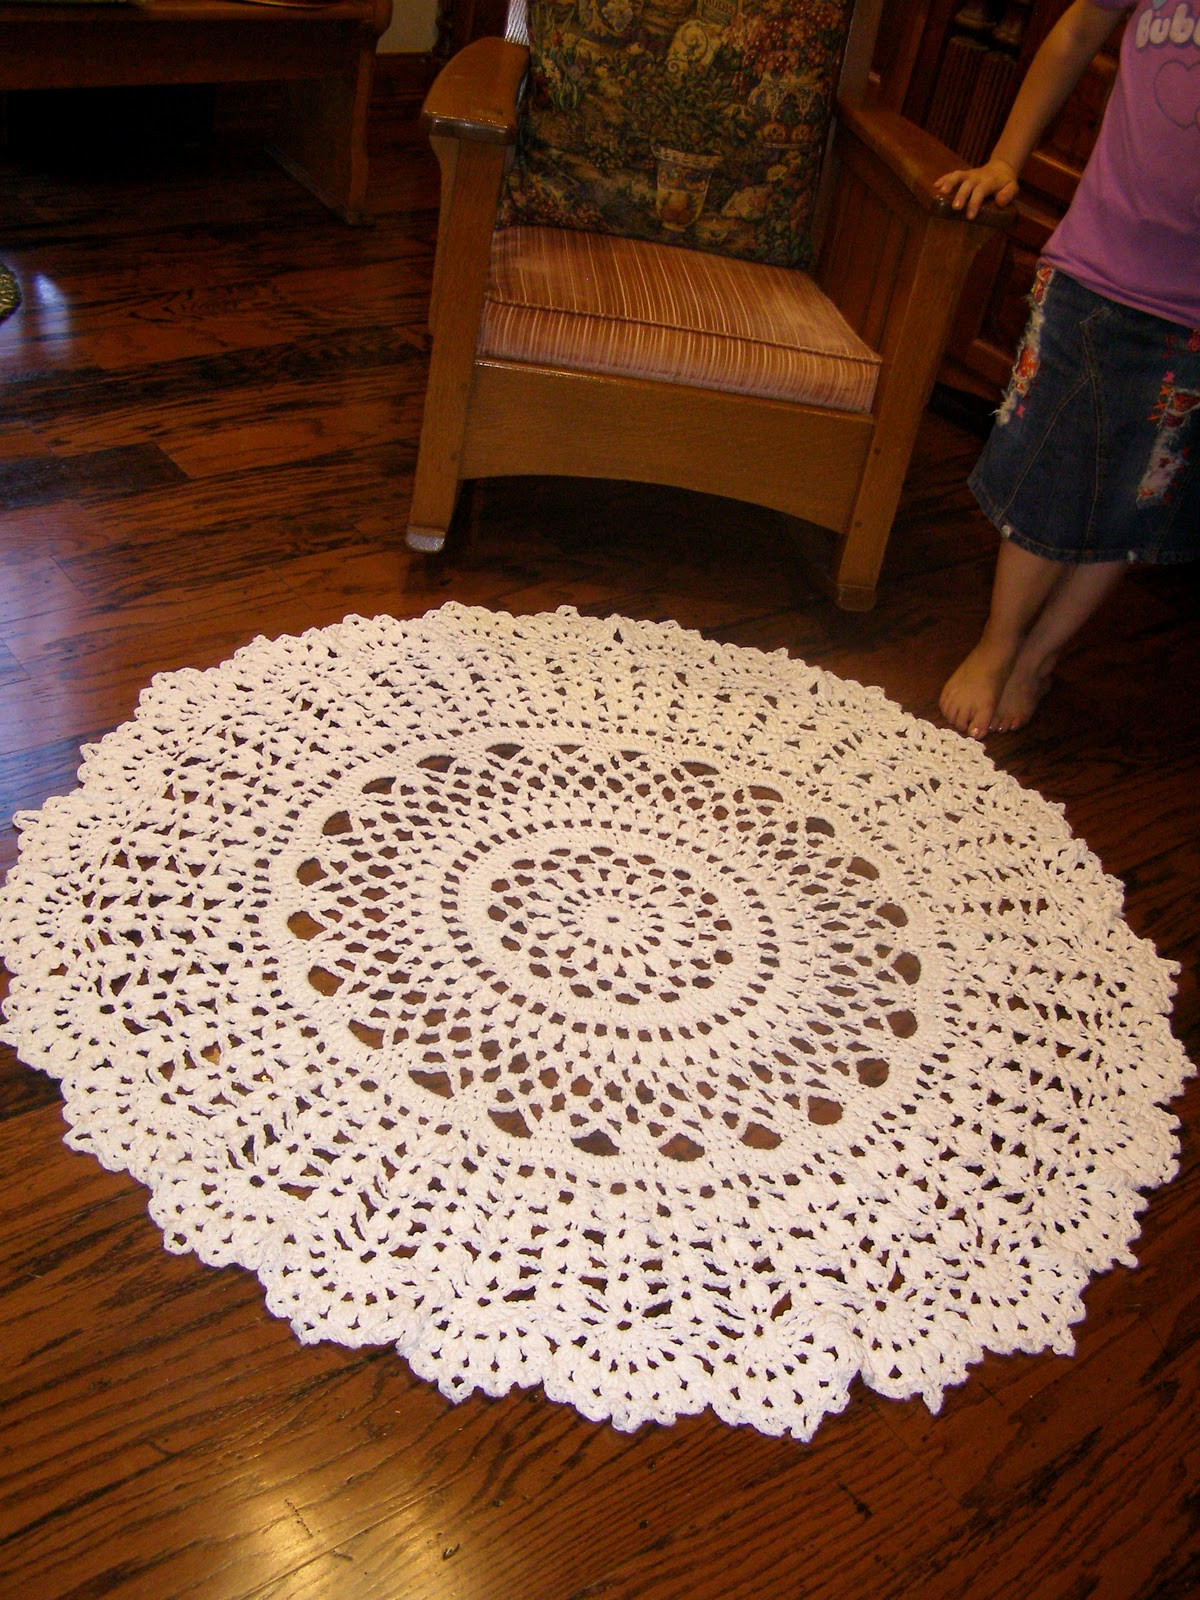 Crochet Rug Unique Lace and Whimsy Crocheted Rug Doily Coverlet Afghan Of Top 44 Photos Crochet Rug